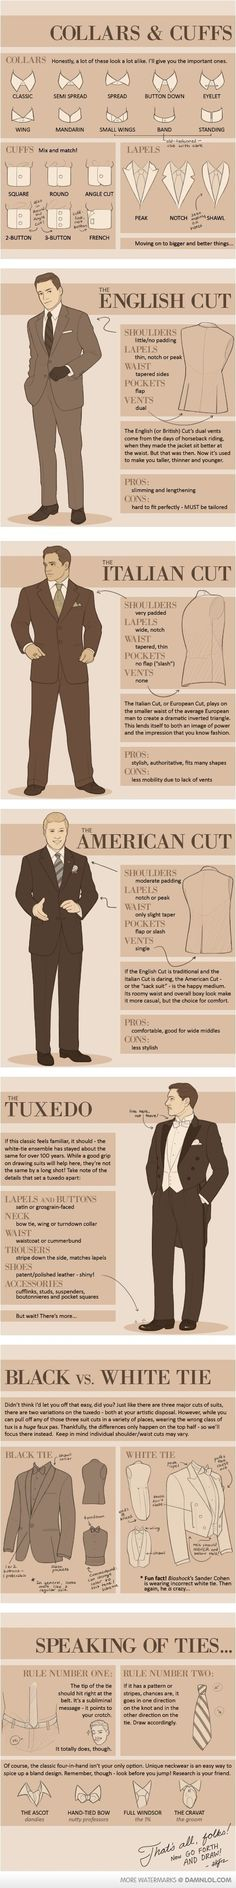 Mens suit styles explained. This would have made my men's suit shopping experience much easier!